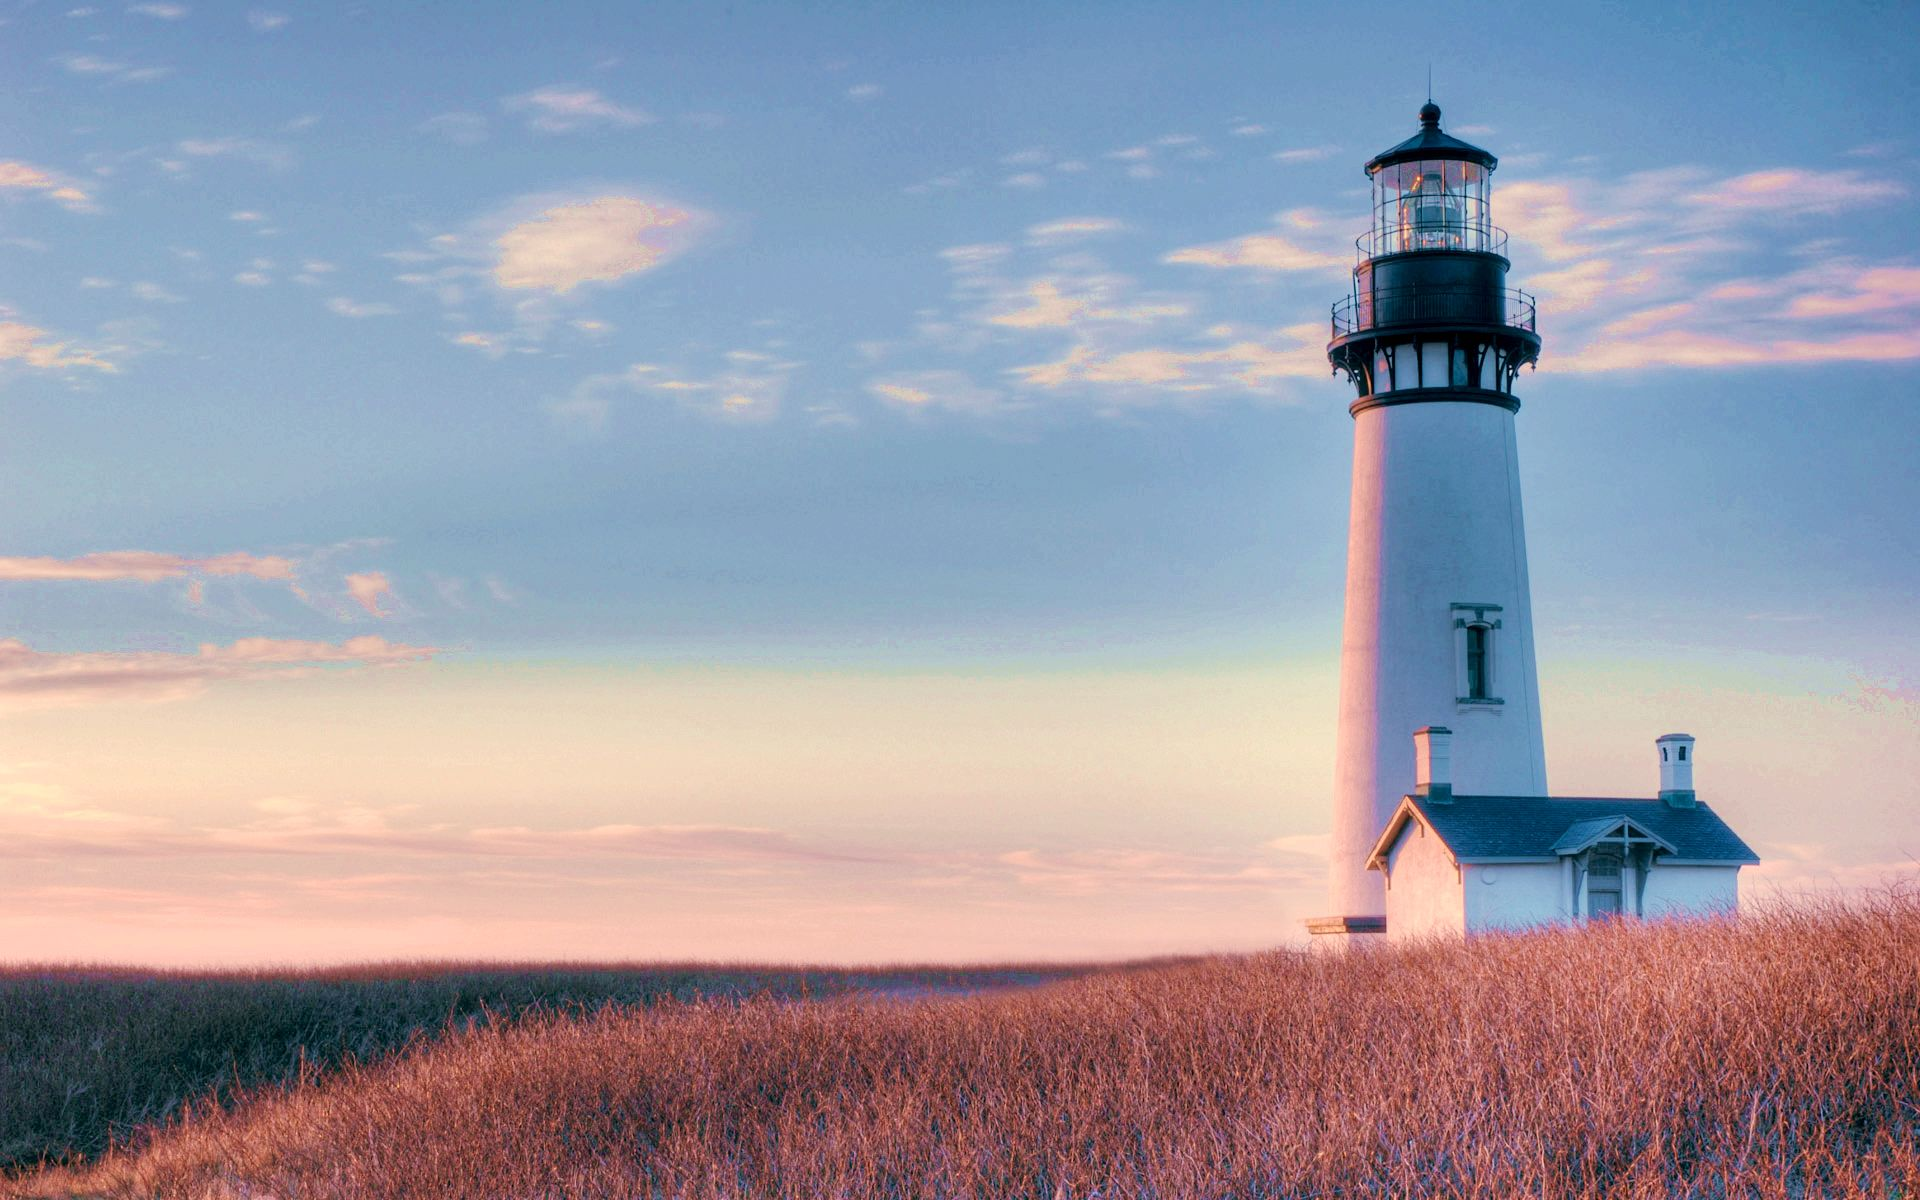 Lighthouse Wallpapers Photos And Desktop Backgrounds Up To 8k 7680x4320 Resolution